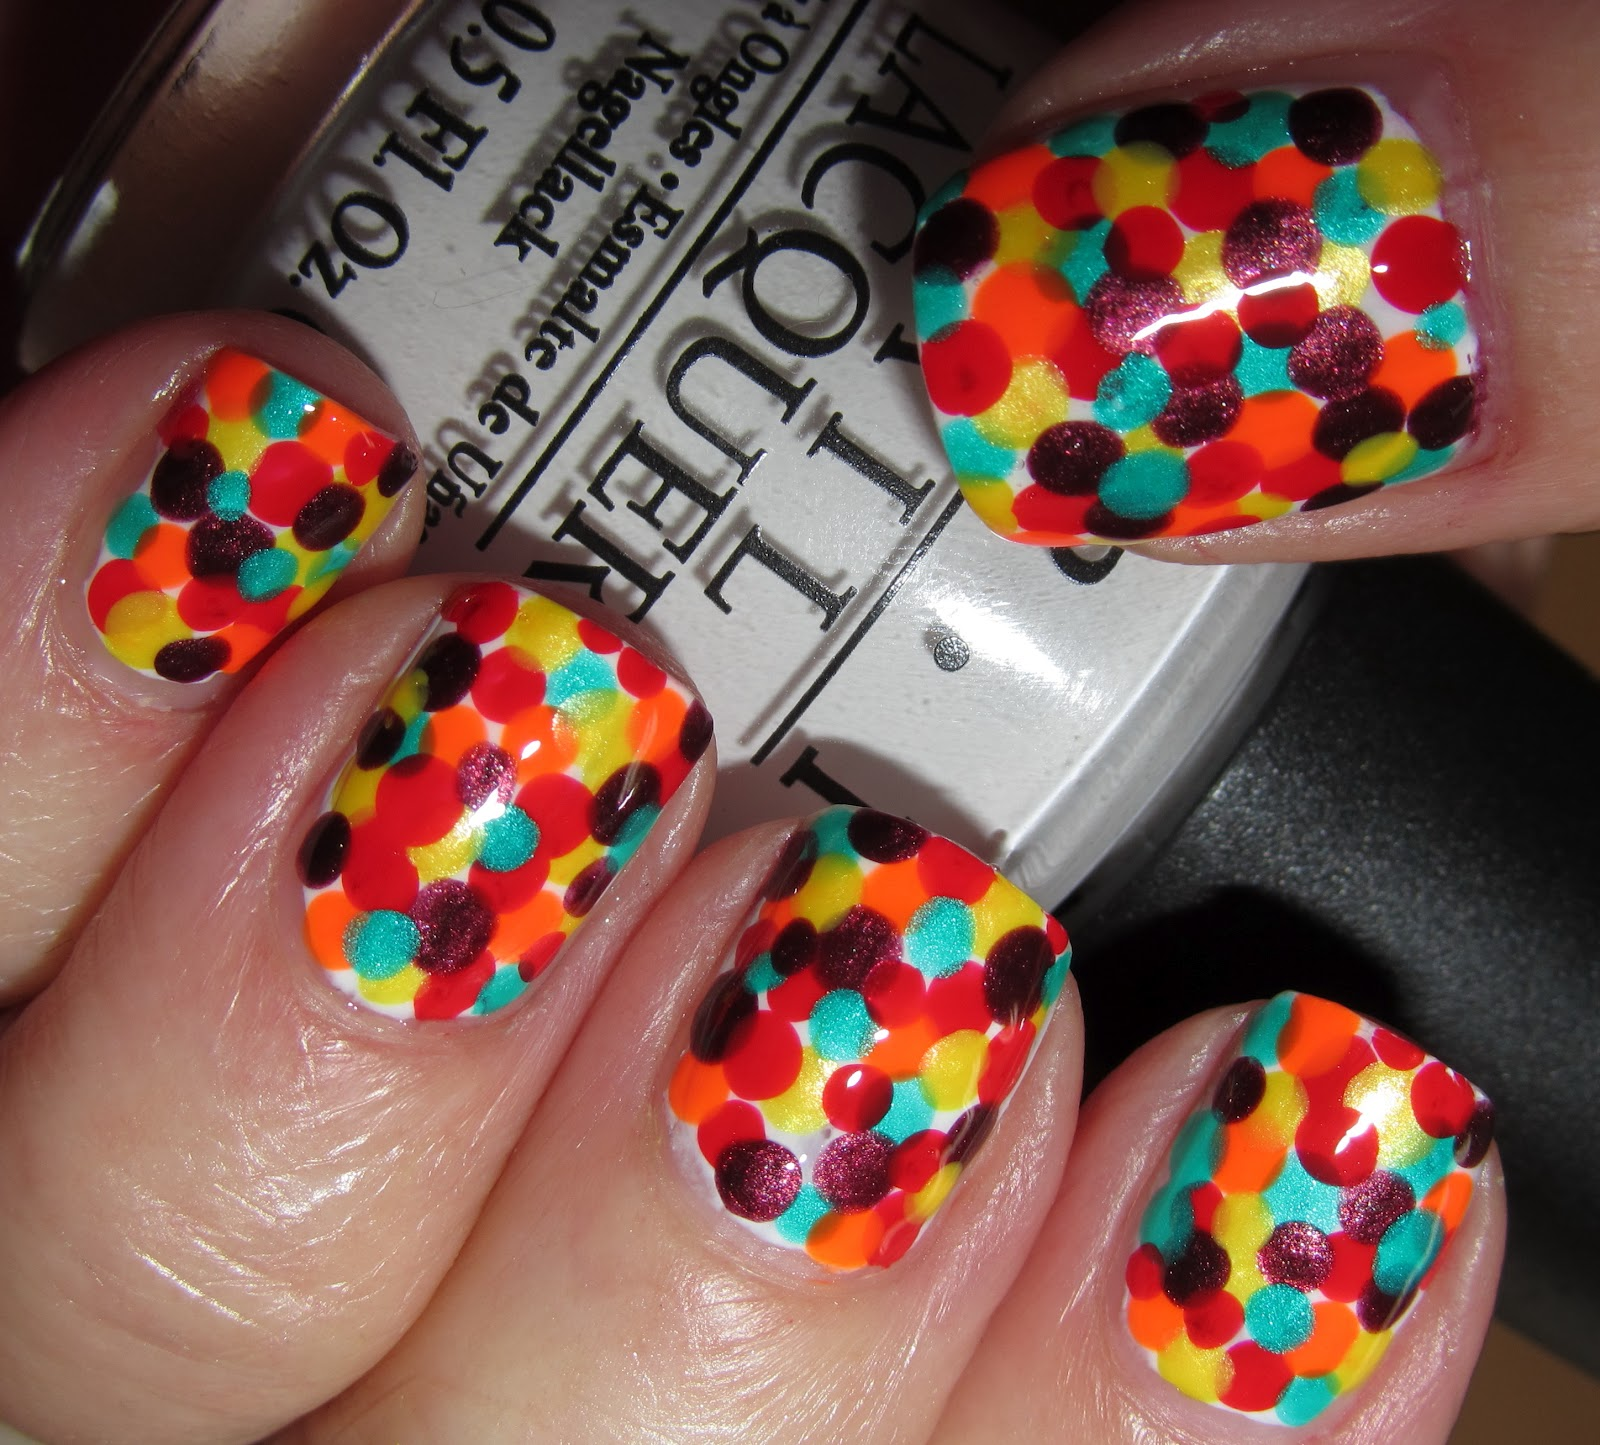 Marias Nail Art And Polish Blog: Hiding In Skittles